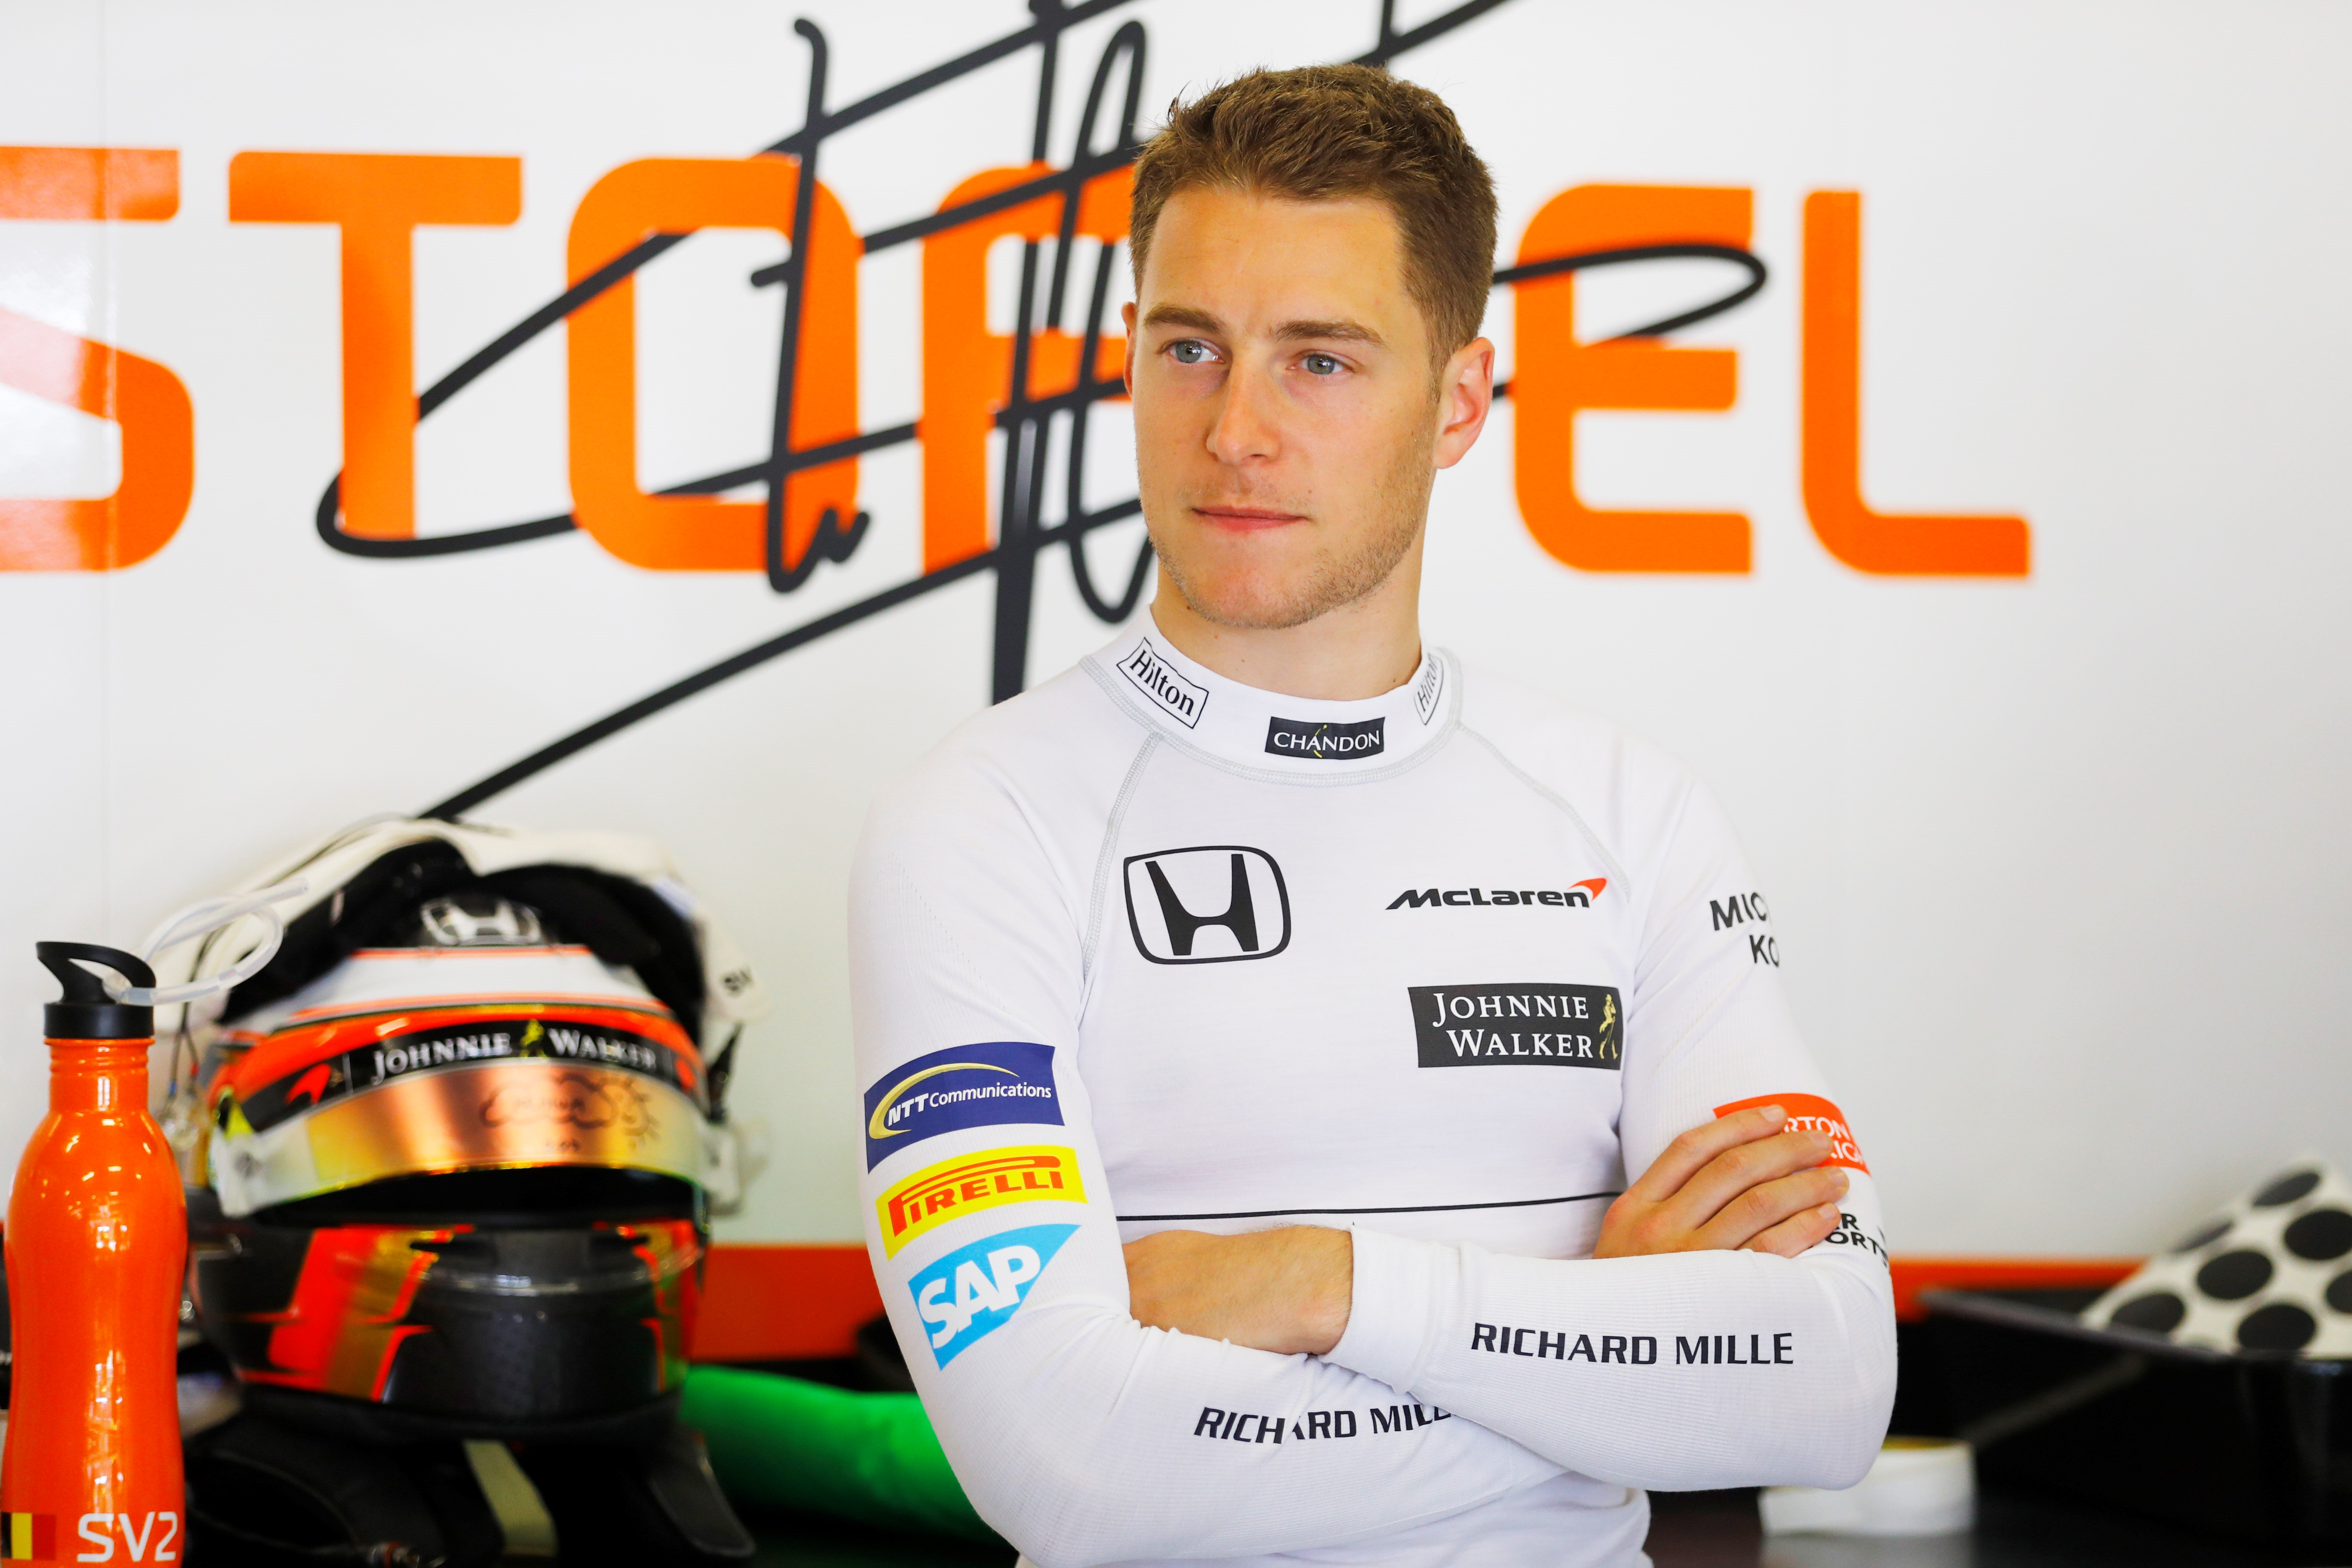 McLAREN HONDA CONFIRMS STOFFEL VANDOORNE WILL RACE FOR THE TEAM IN 2018 AS PLANNED